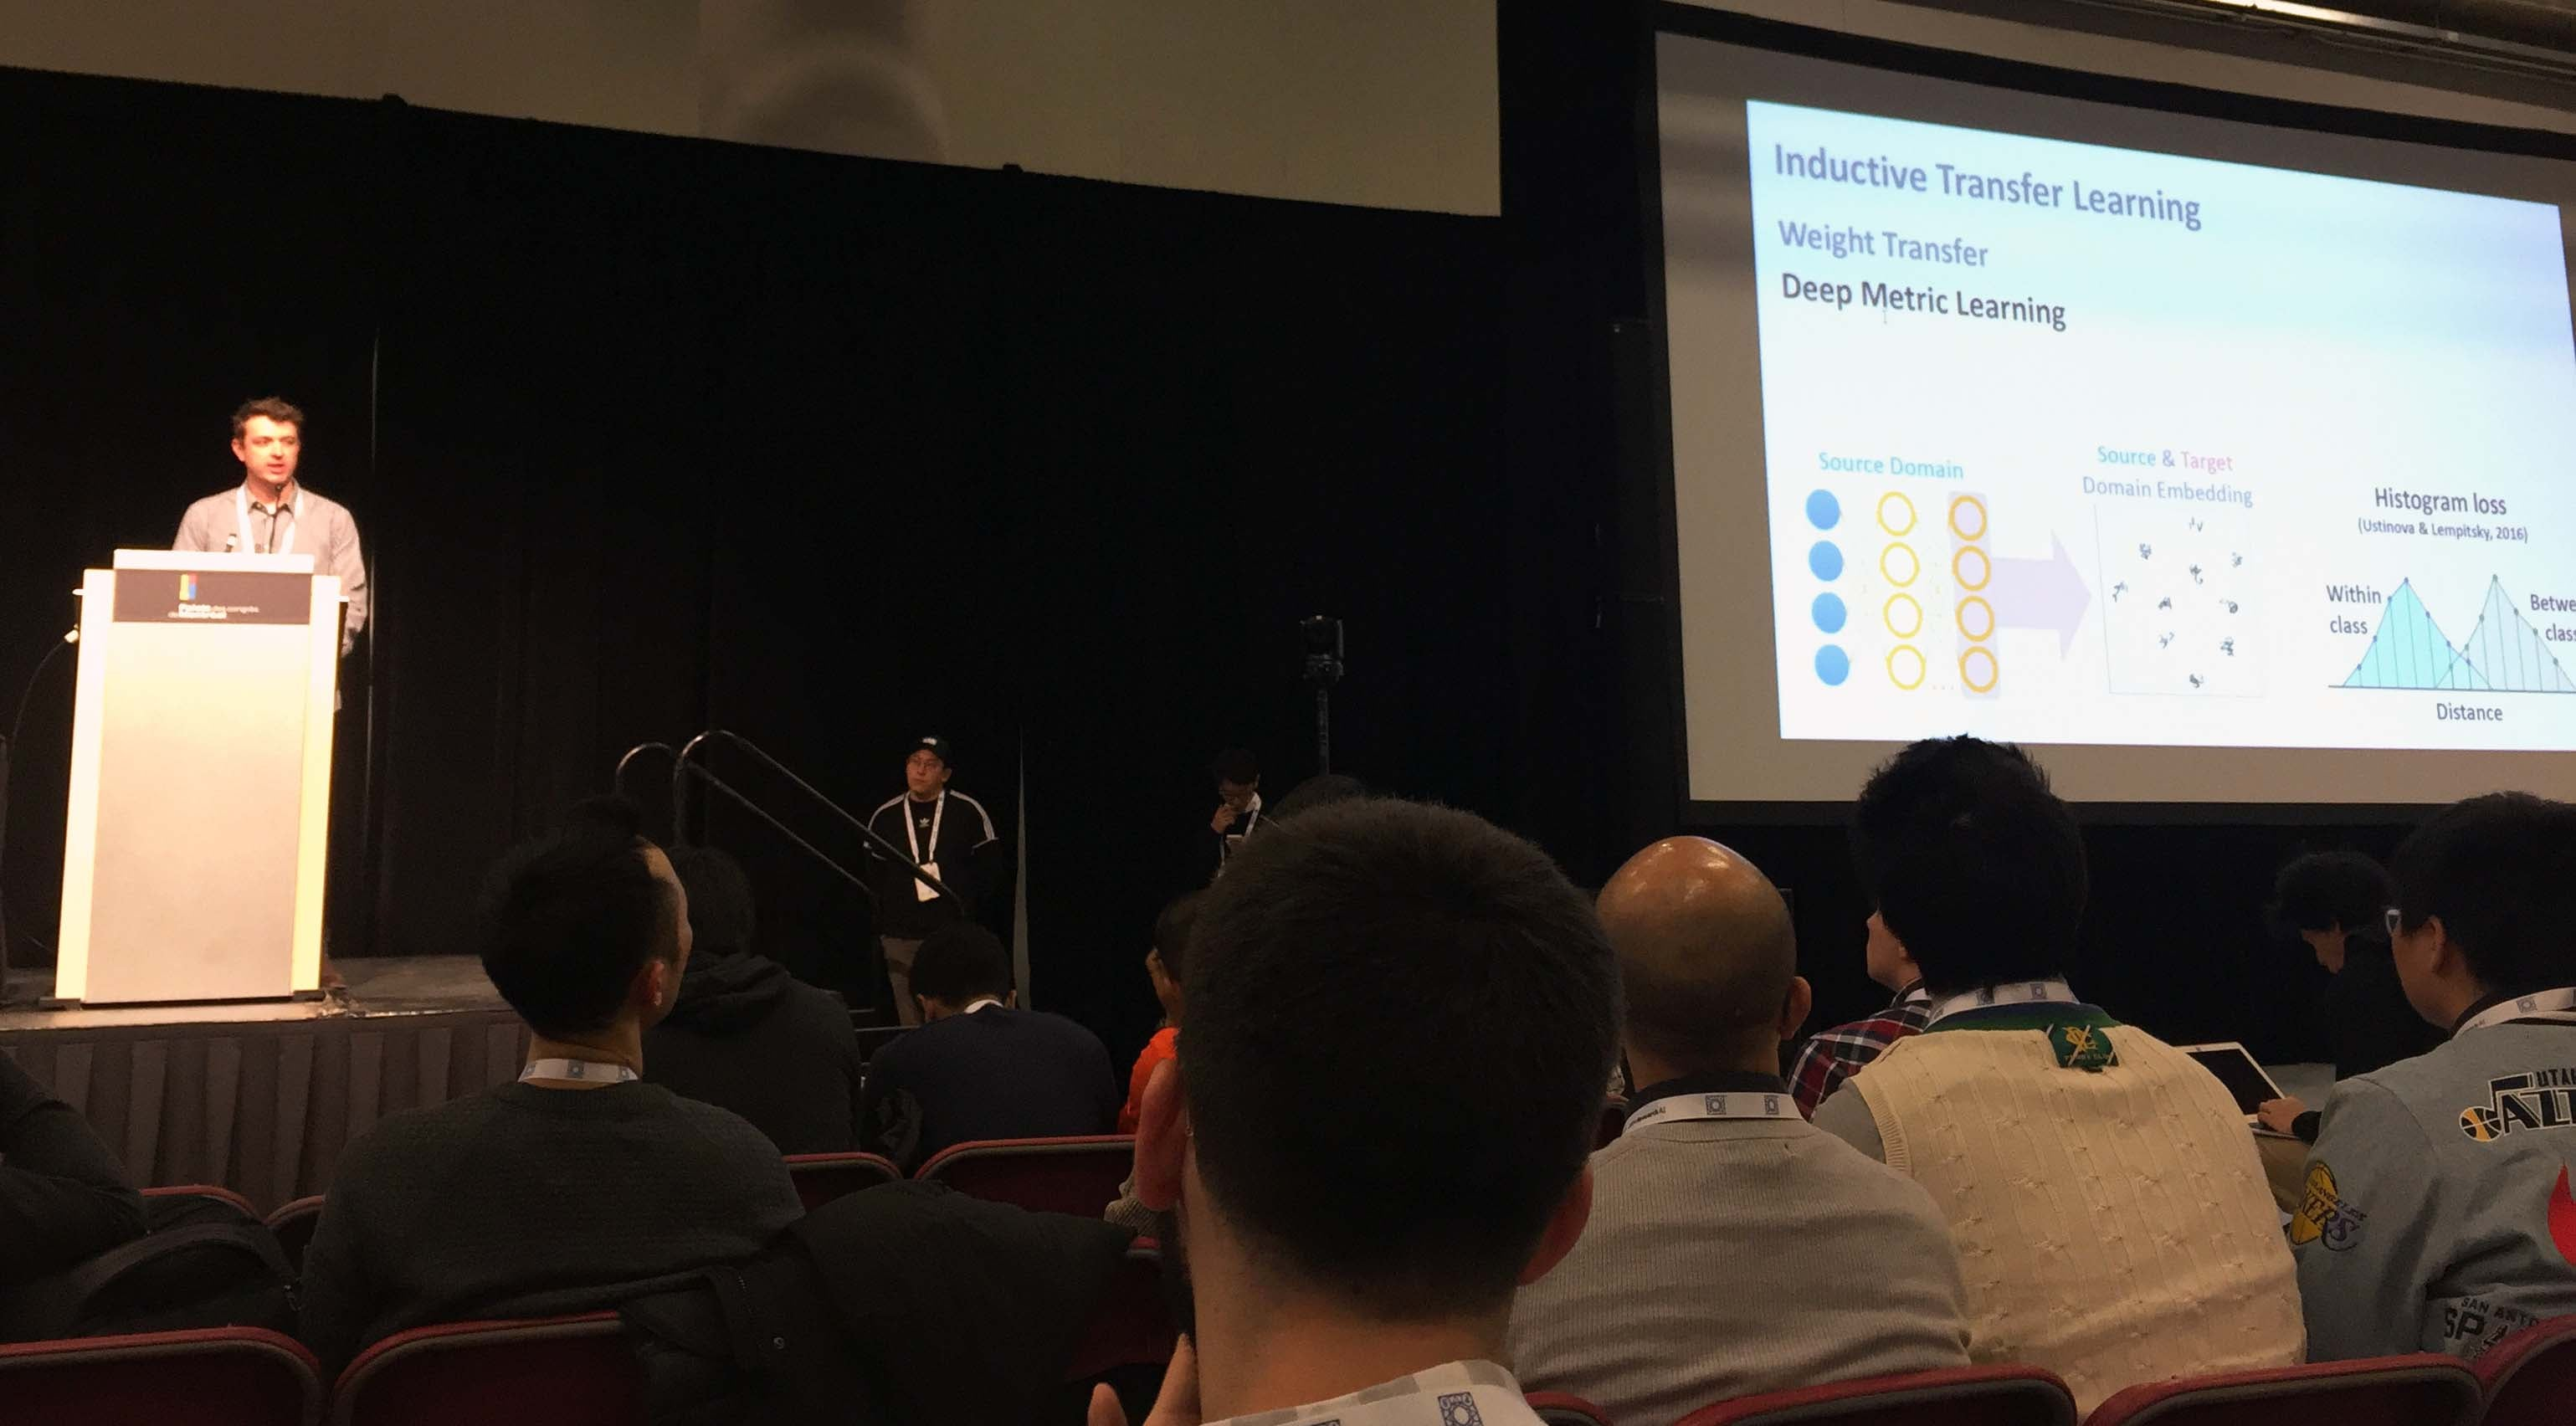 Scott presents his research at the NeurIPS conference in 2018.